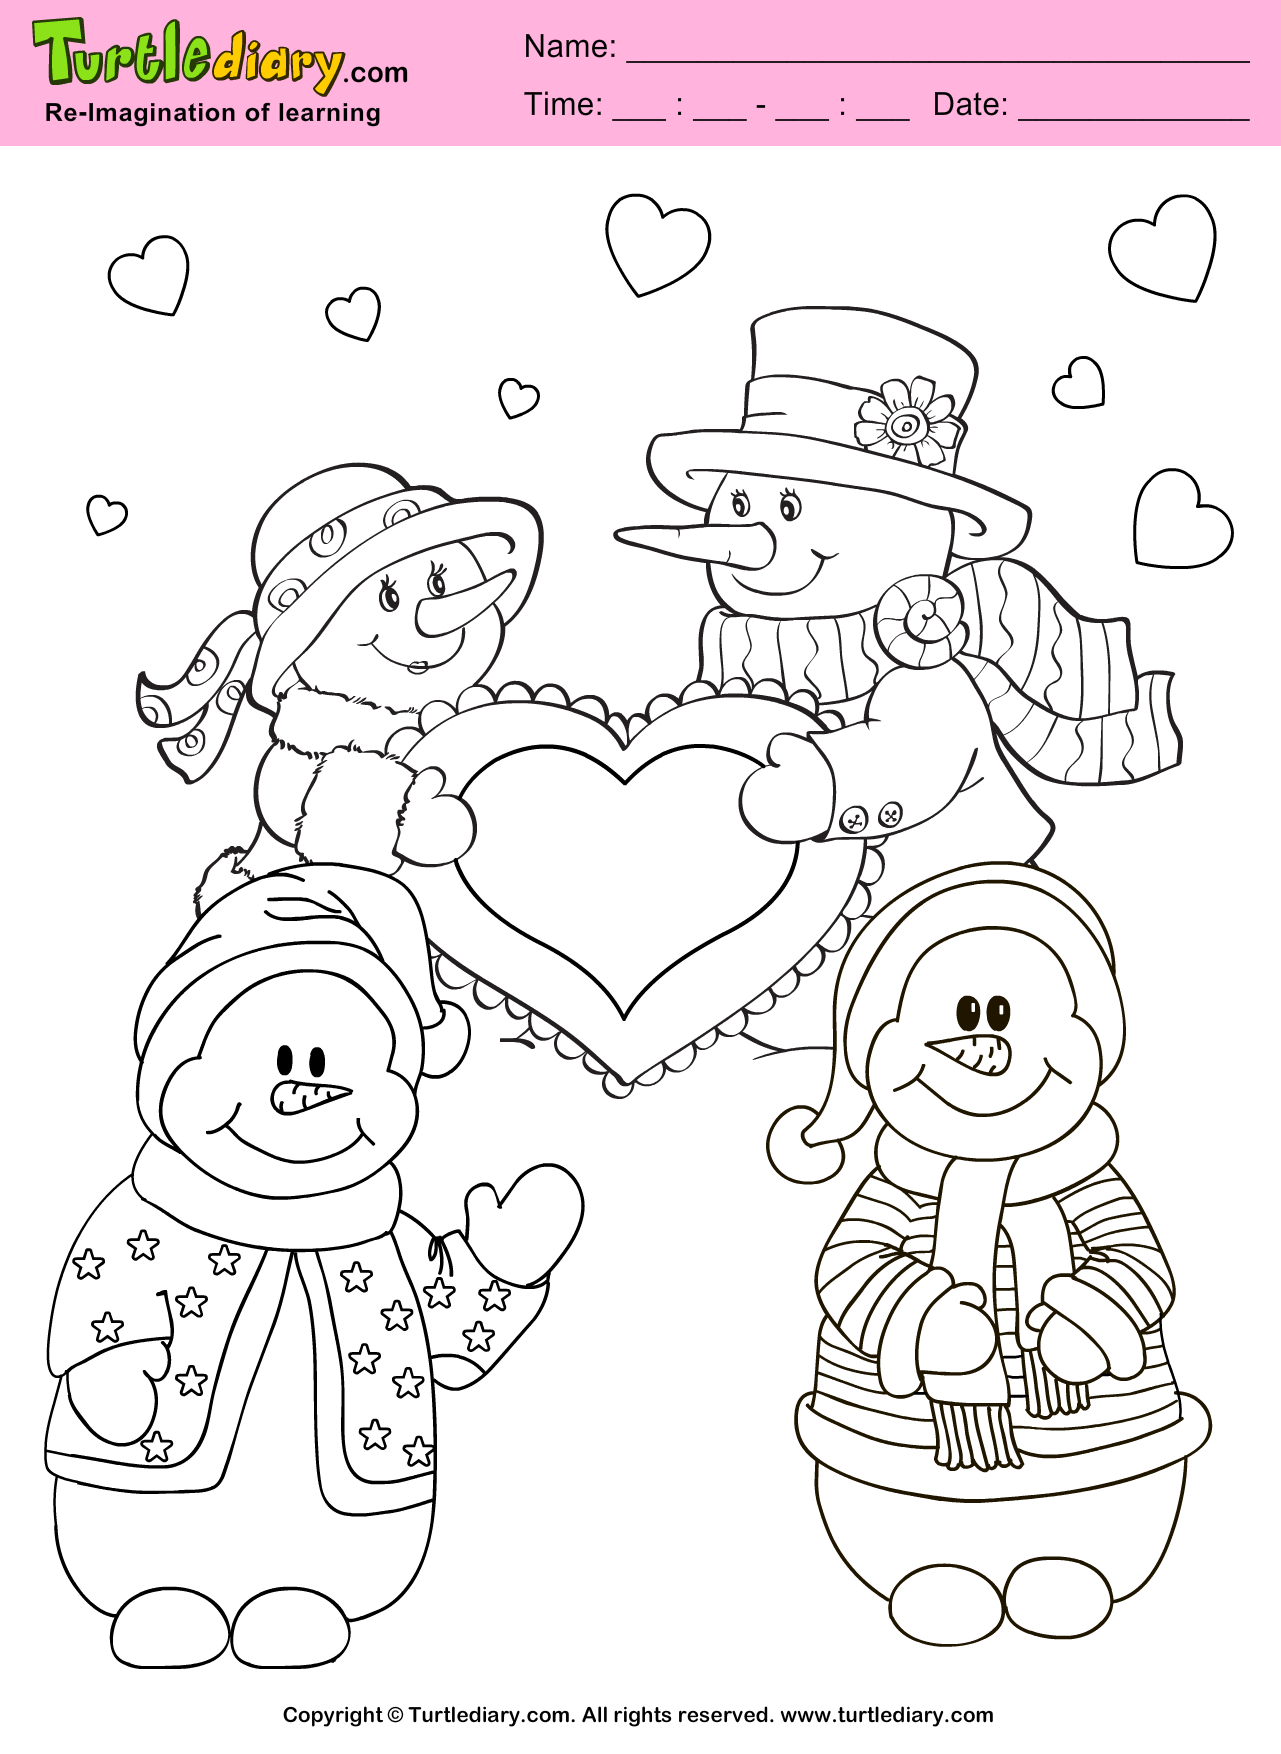 Worksheet. Snowman Valentine Day Coloring Sheet  Turtle Diary